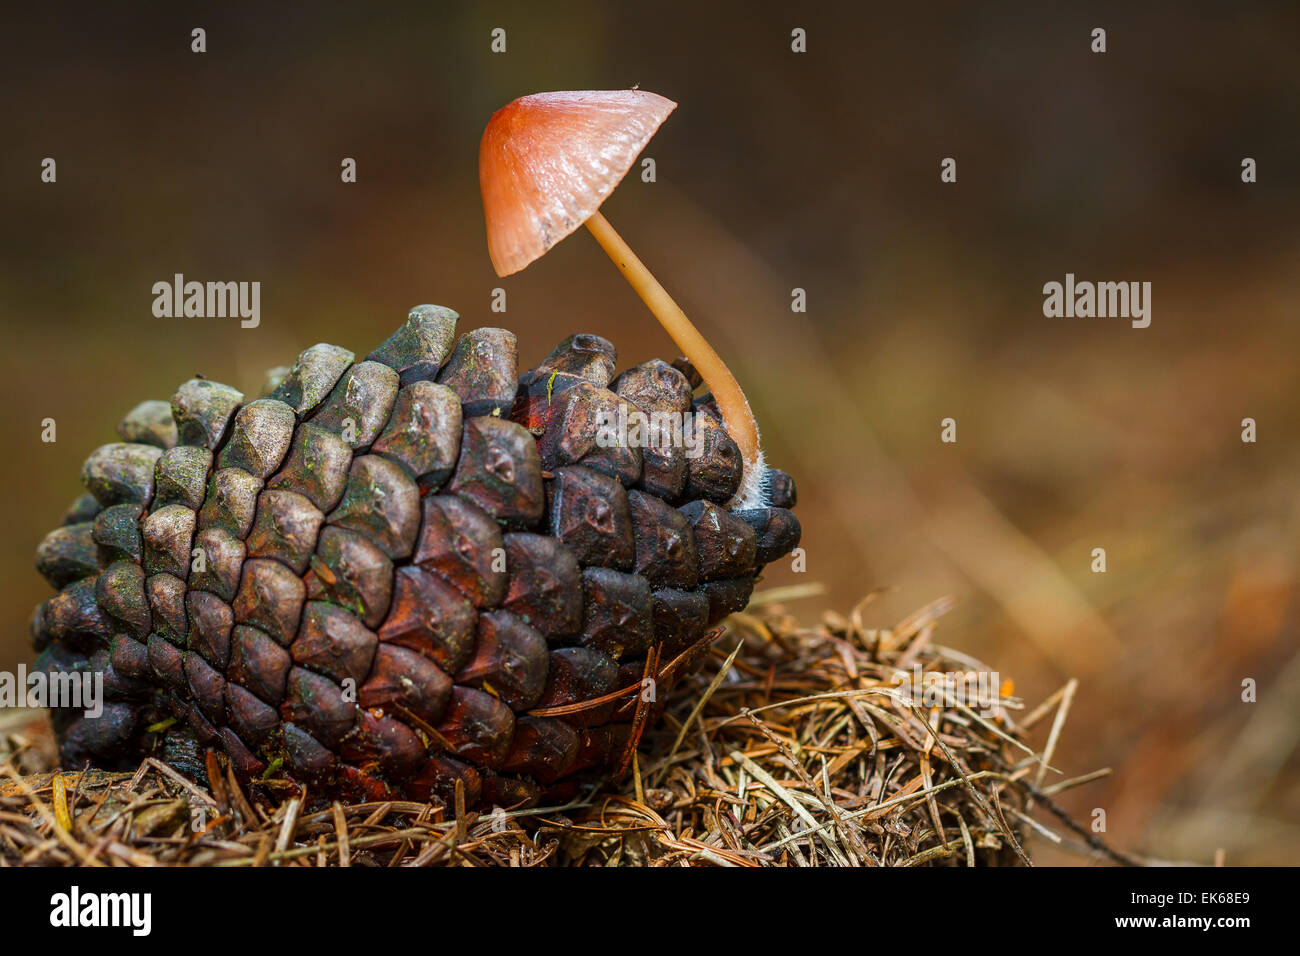 Pine cone and Pine cone mushroom (Mycena seynesii). - Stock Image